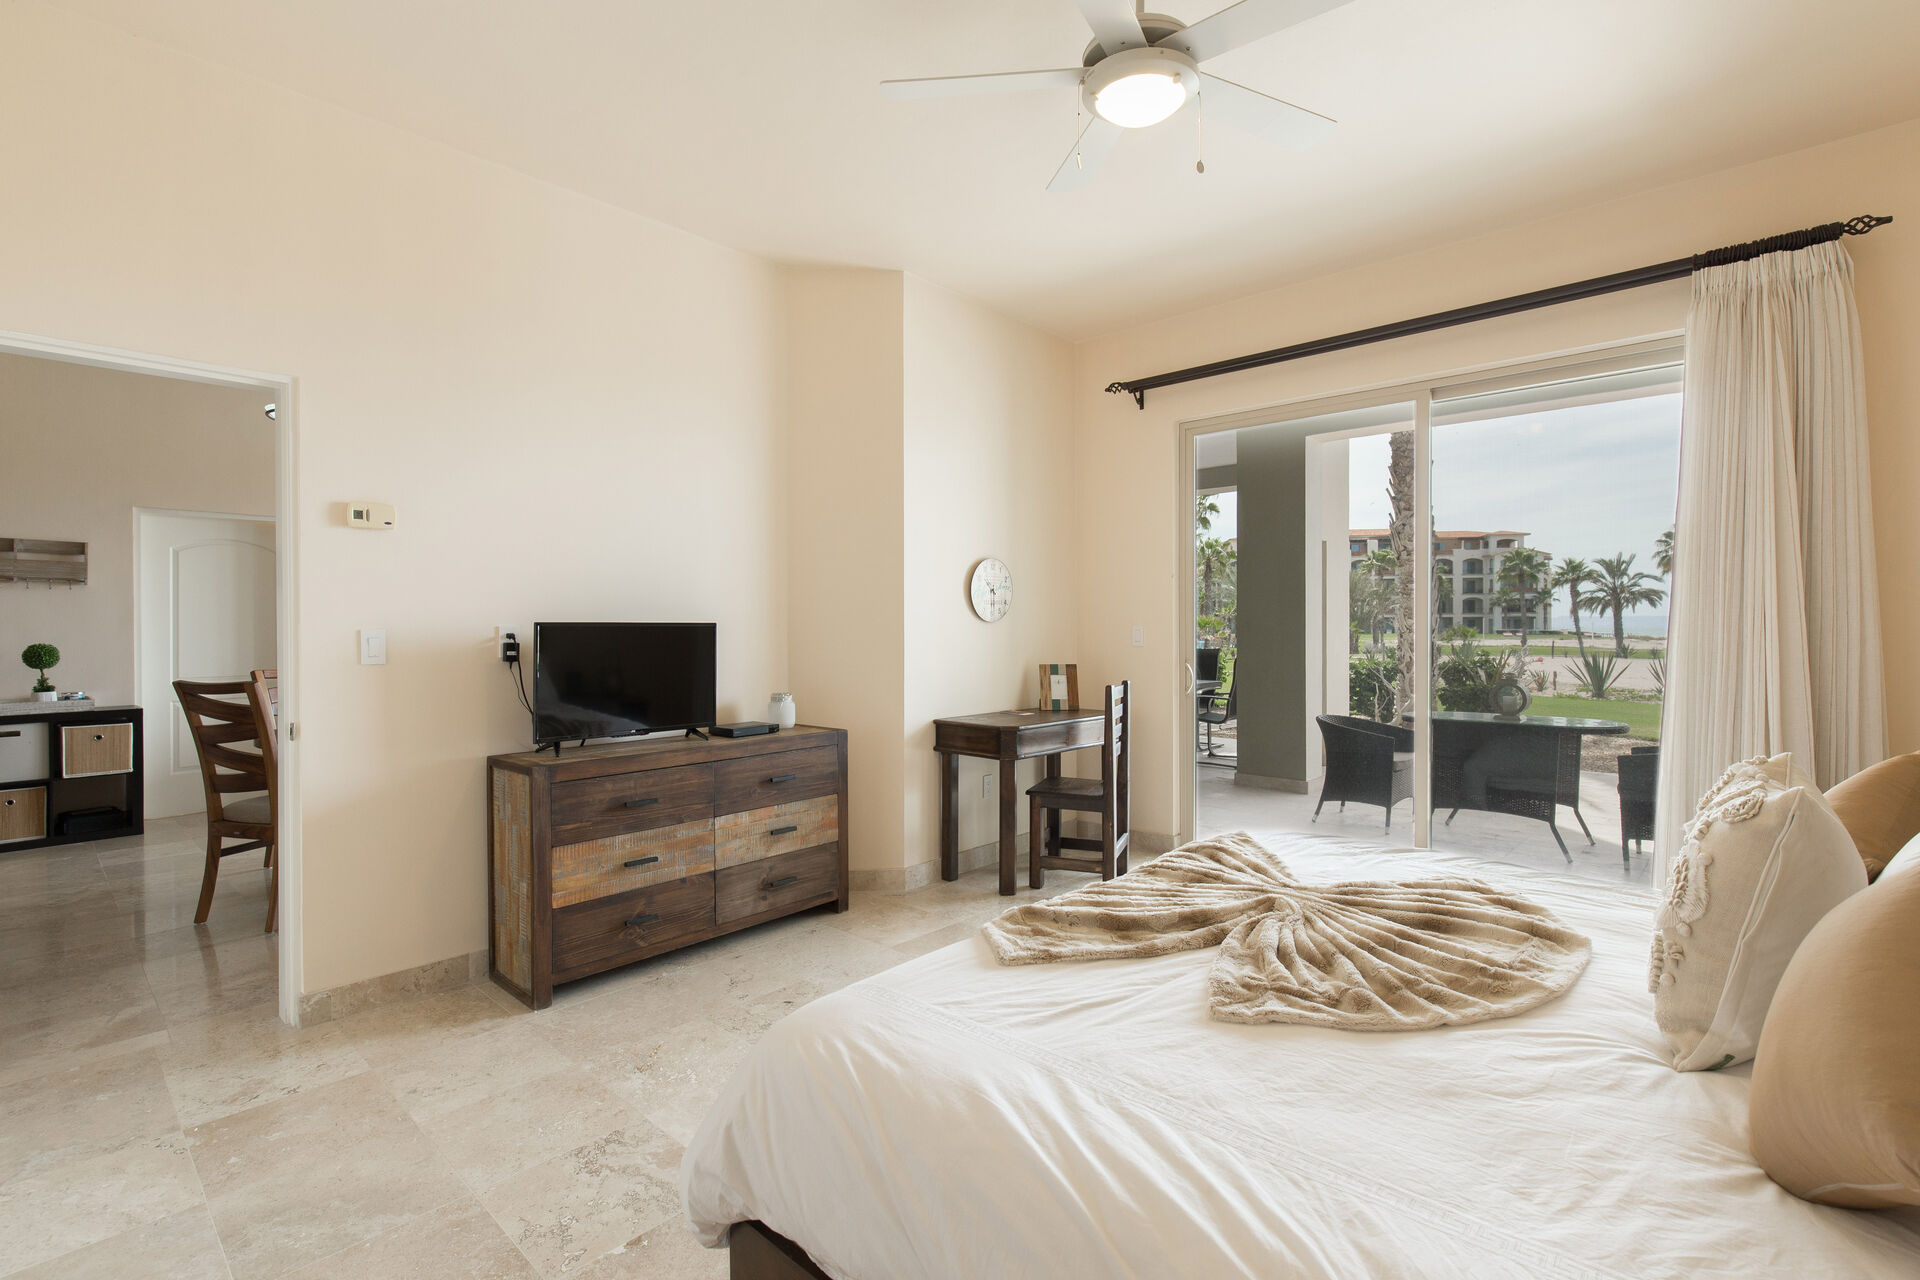 Guests room with two bed and tv with beatiful view